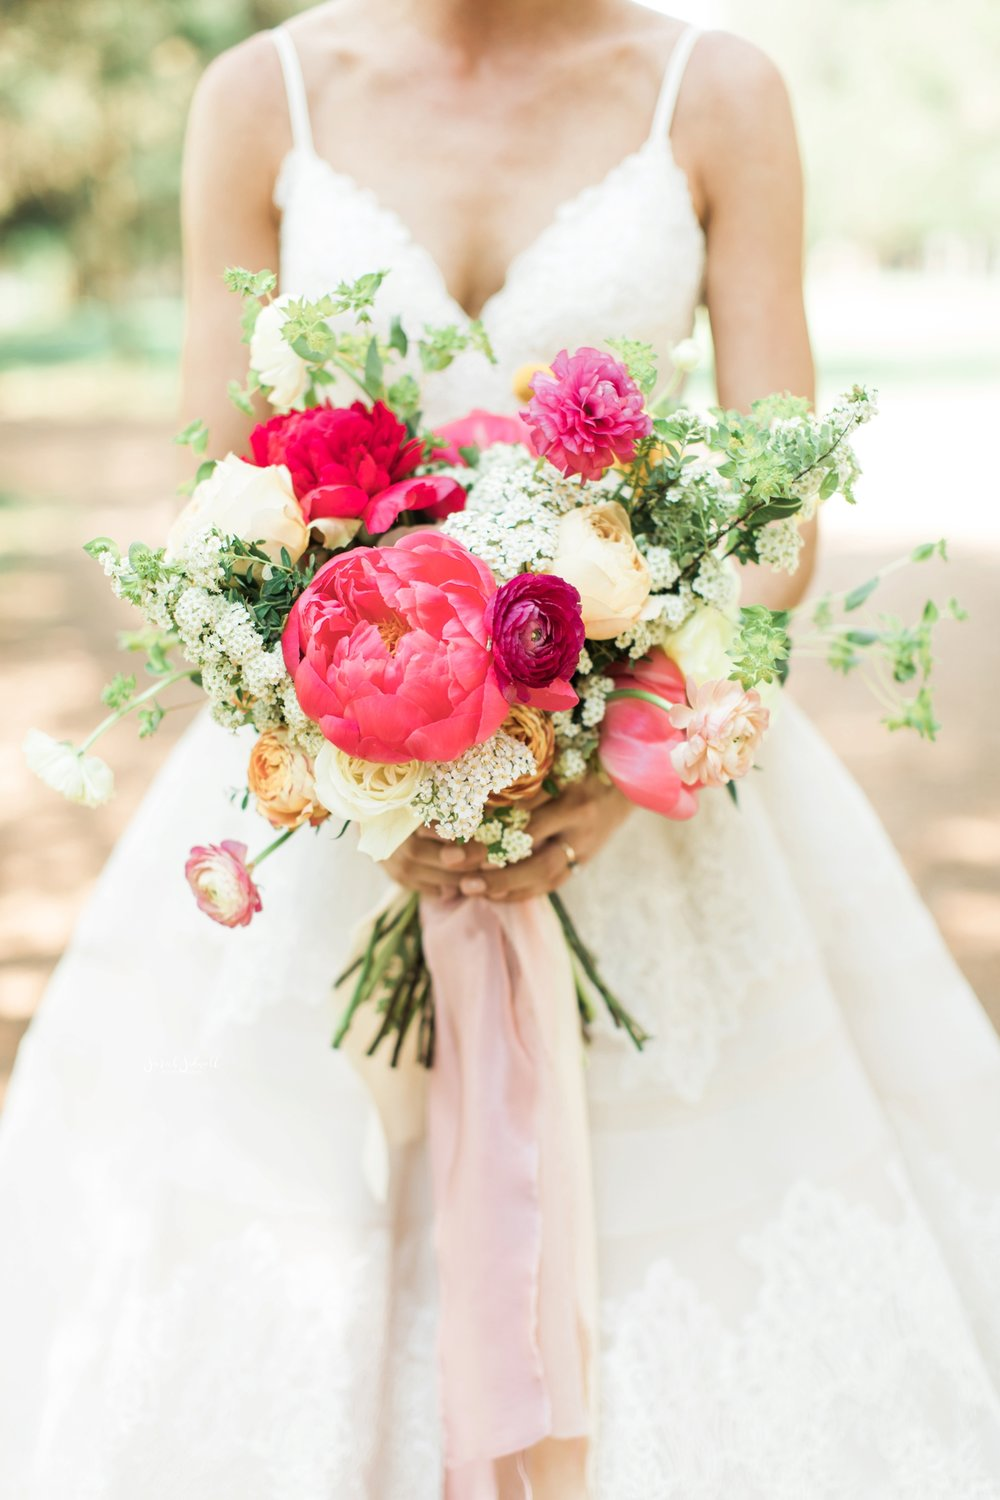 A bride holds her bouquet that has bright pink flowers.